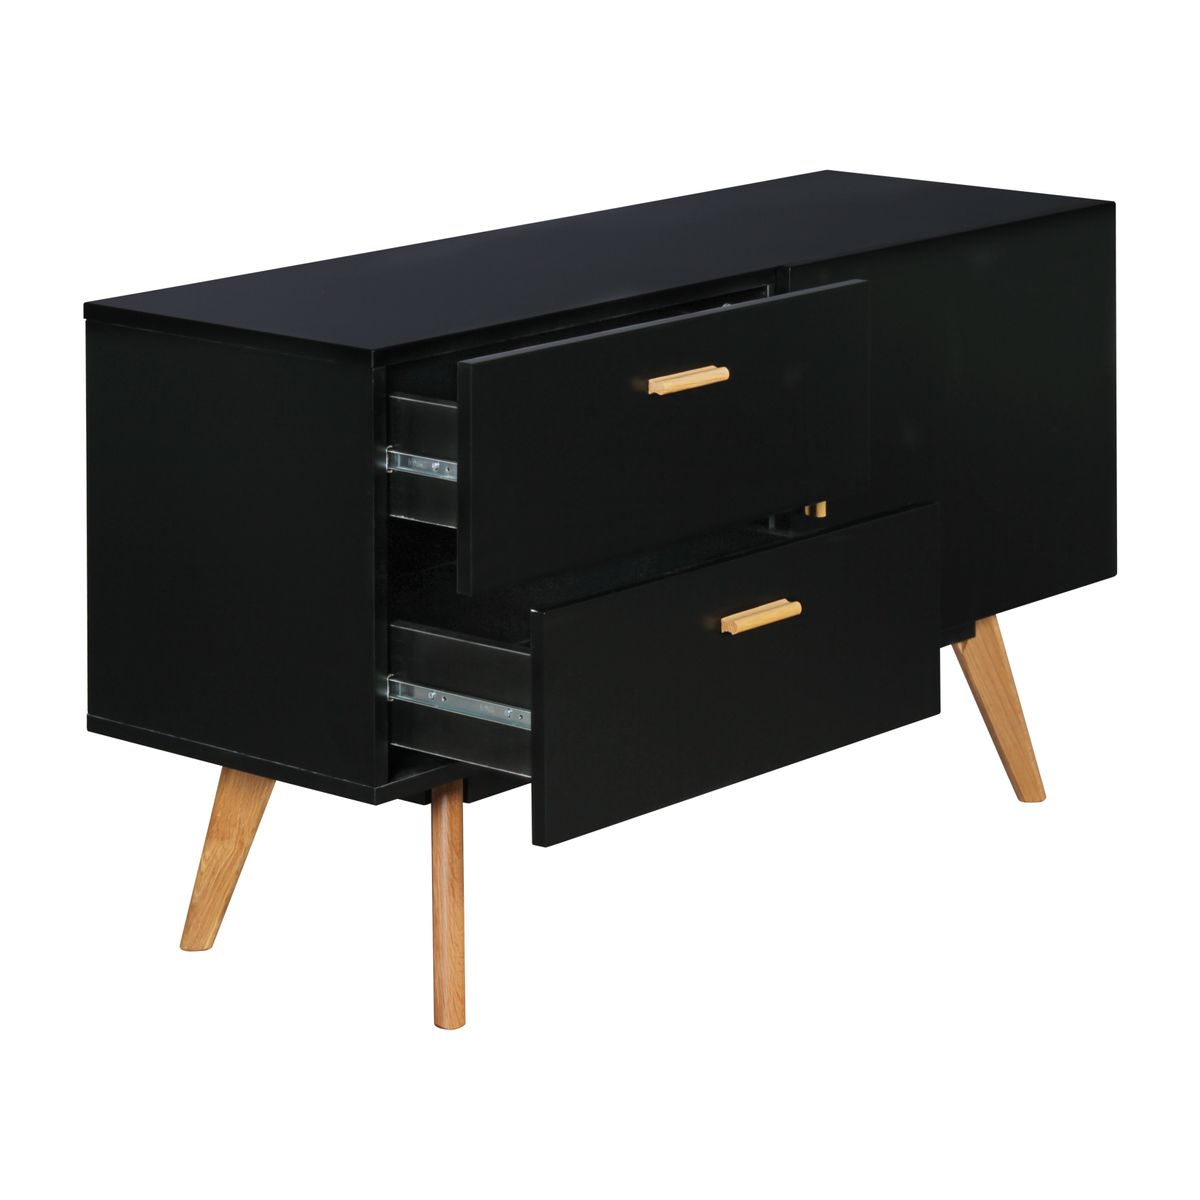 finebuy sideboard scanio matt 120 x 70 cm mit 2 schubladen. Black Bedroom Furniture Sets. Home Design Ideas